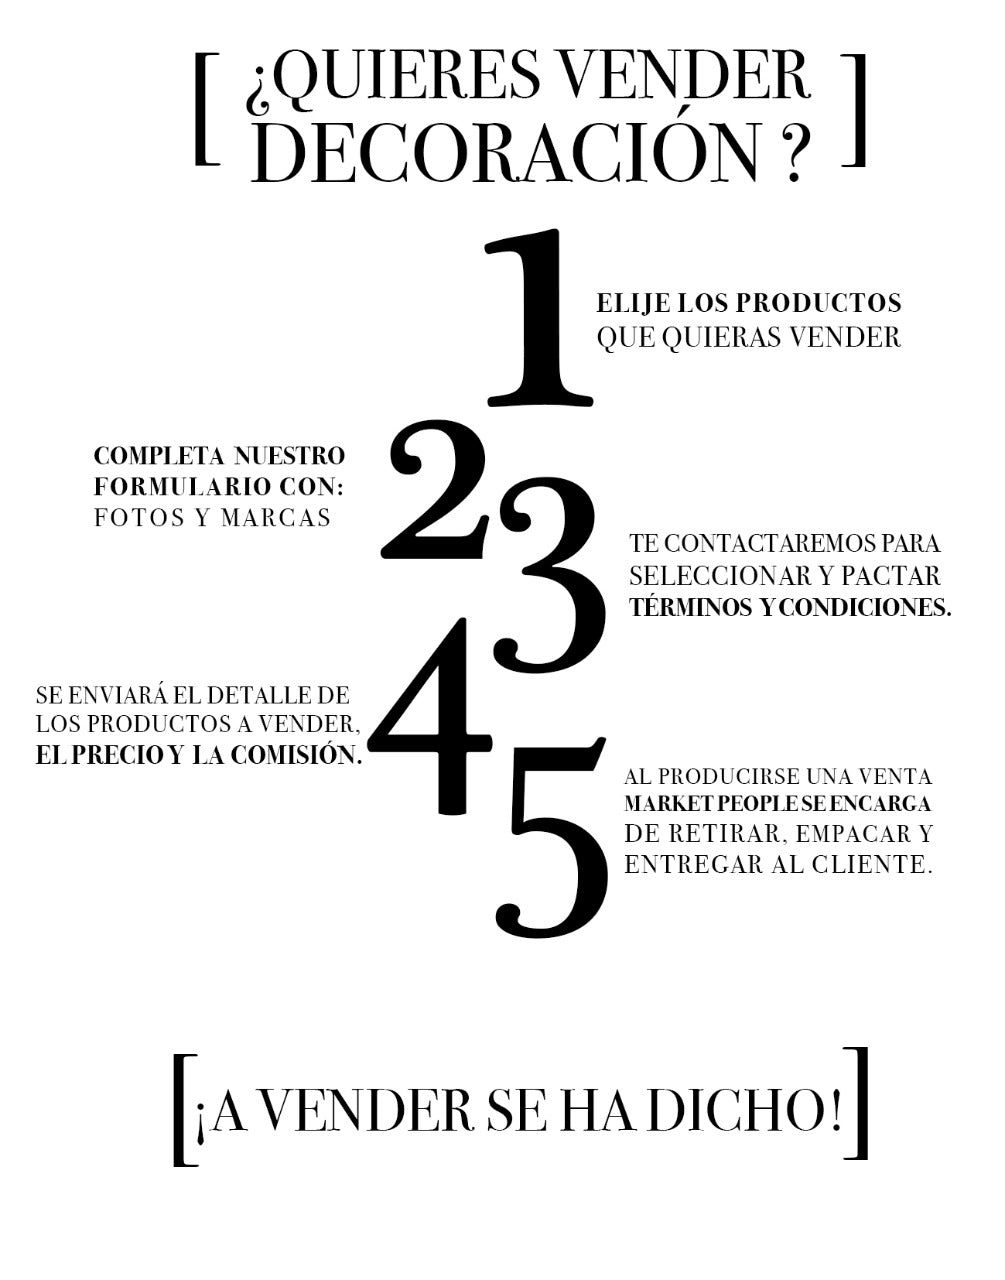 vender-decoracion